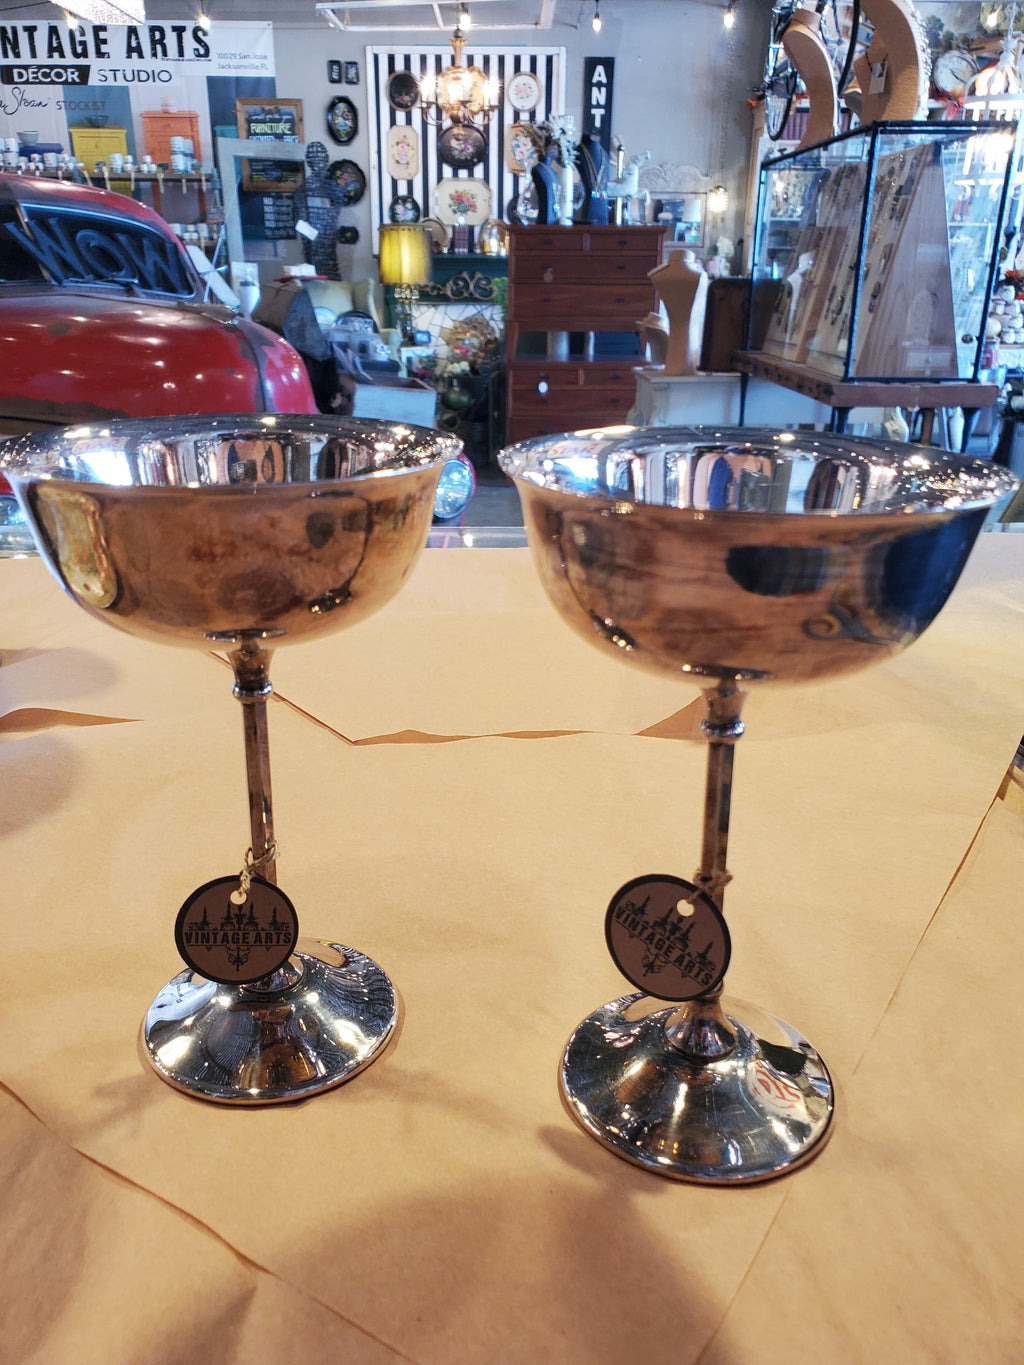 Vintage silver martini glass